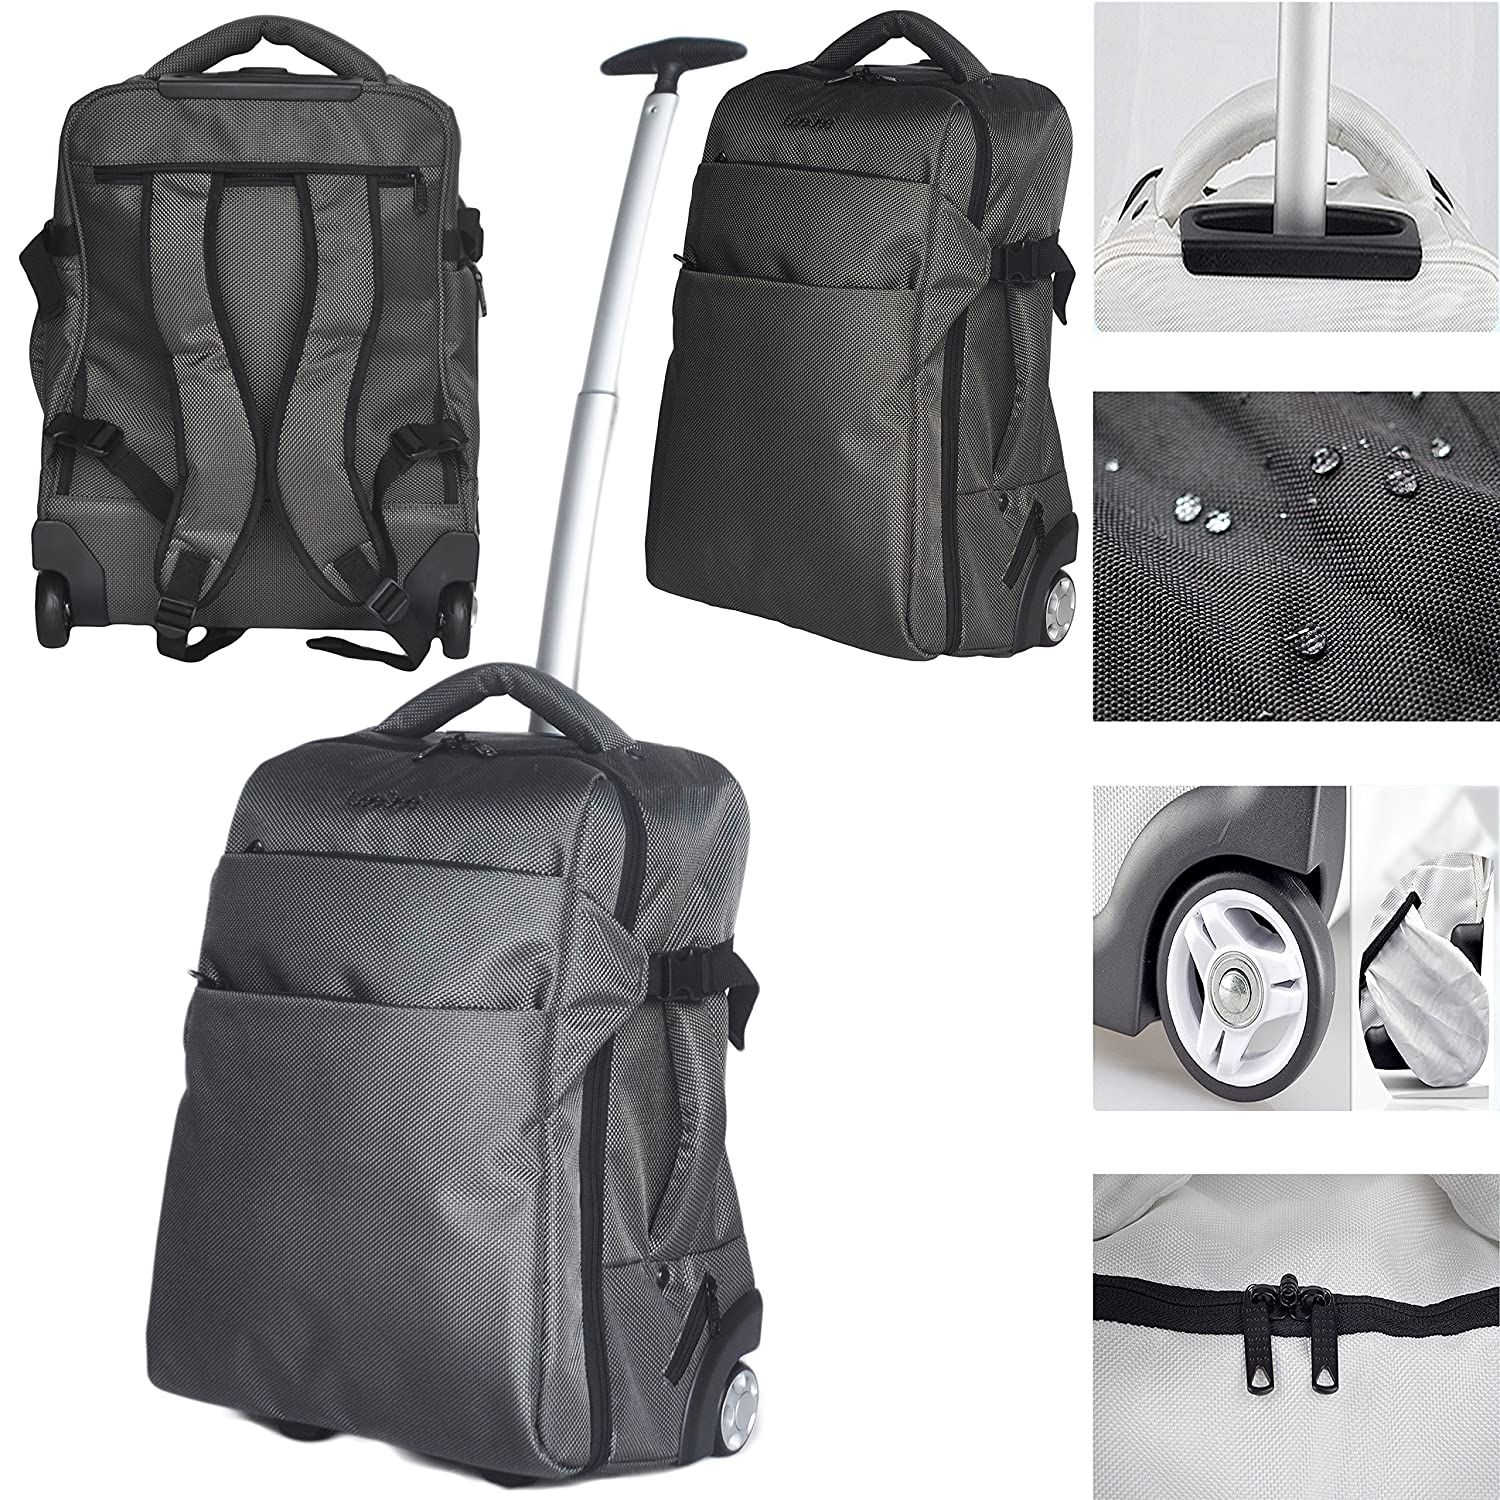 745057a8da6f 3 in 1 Wheeled Cabin Approved Trolley Travel Bag Flight Backpack Hand  Luggage Suitcase Holdall Laptop ...